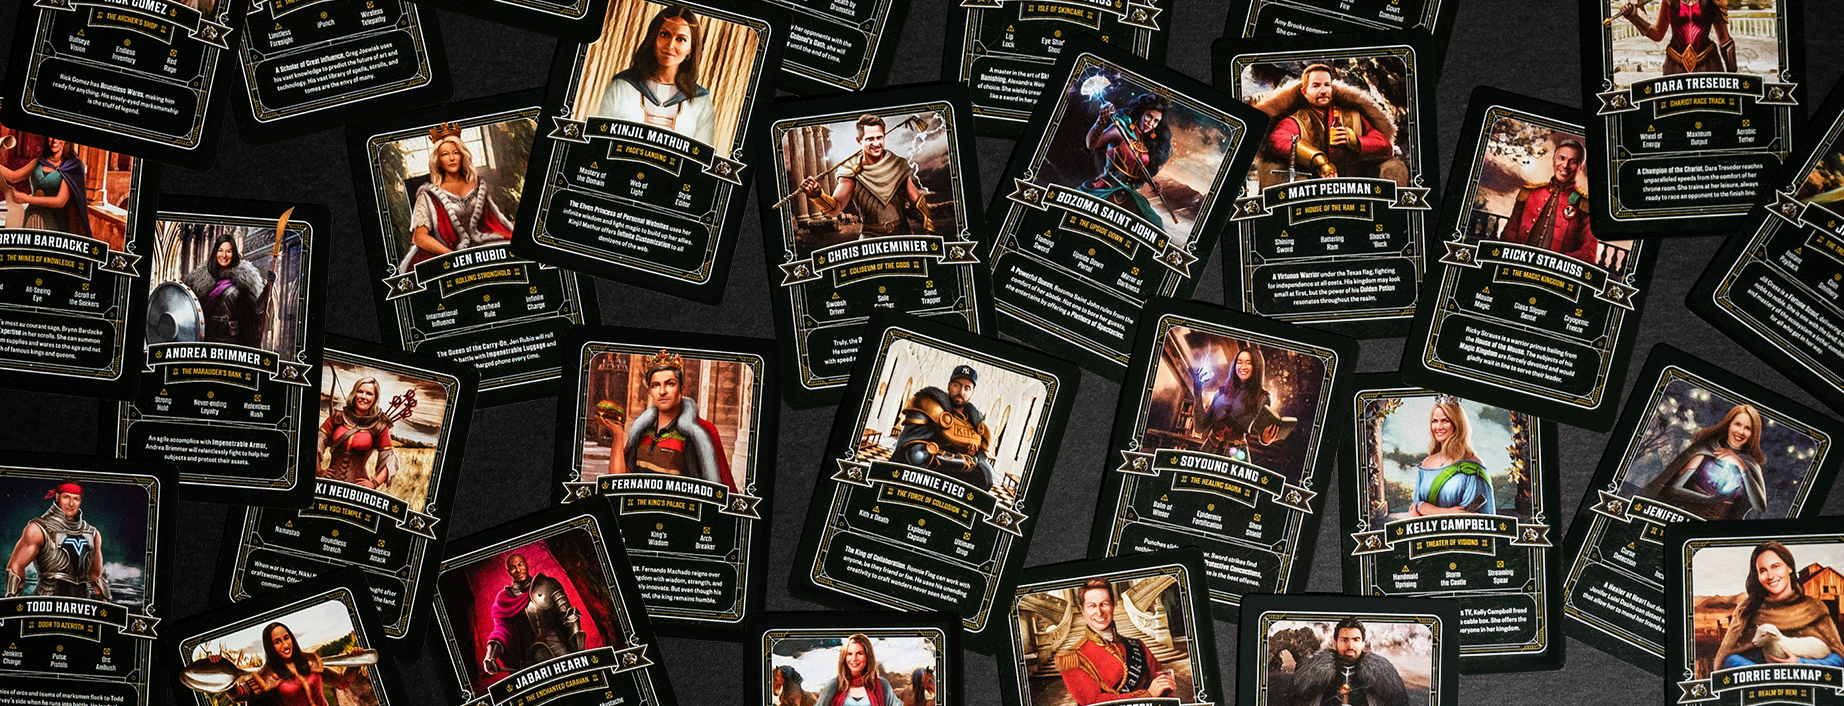 Examples of digital playing cards are shown featuring marketers dressed in fantasy garb